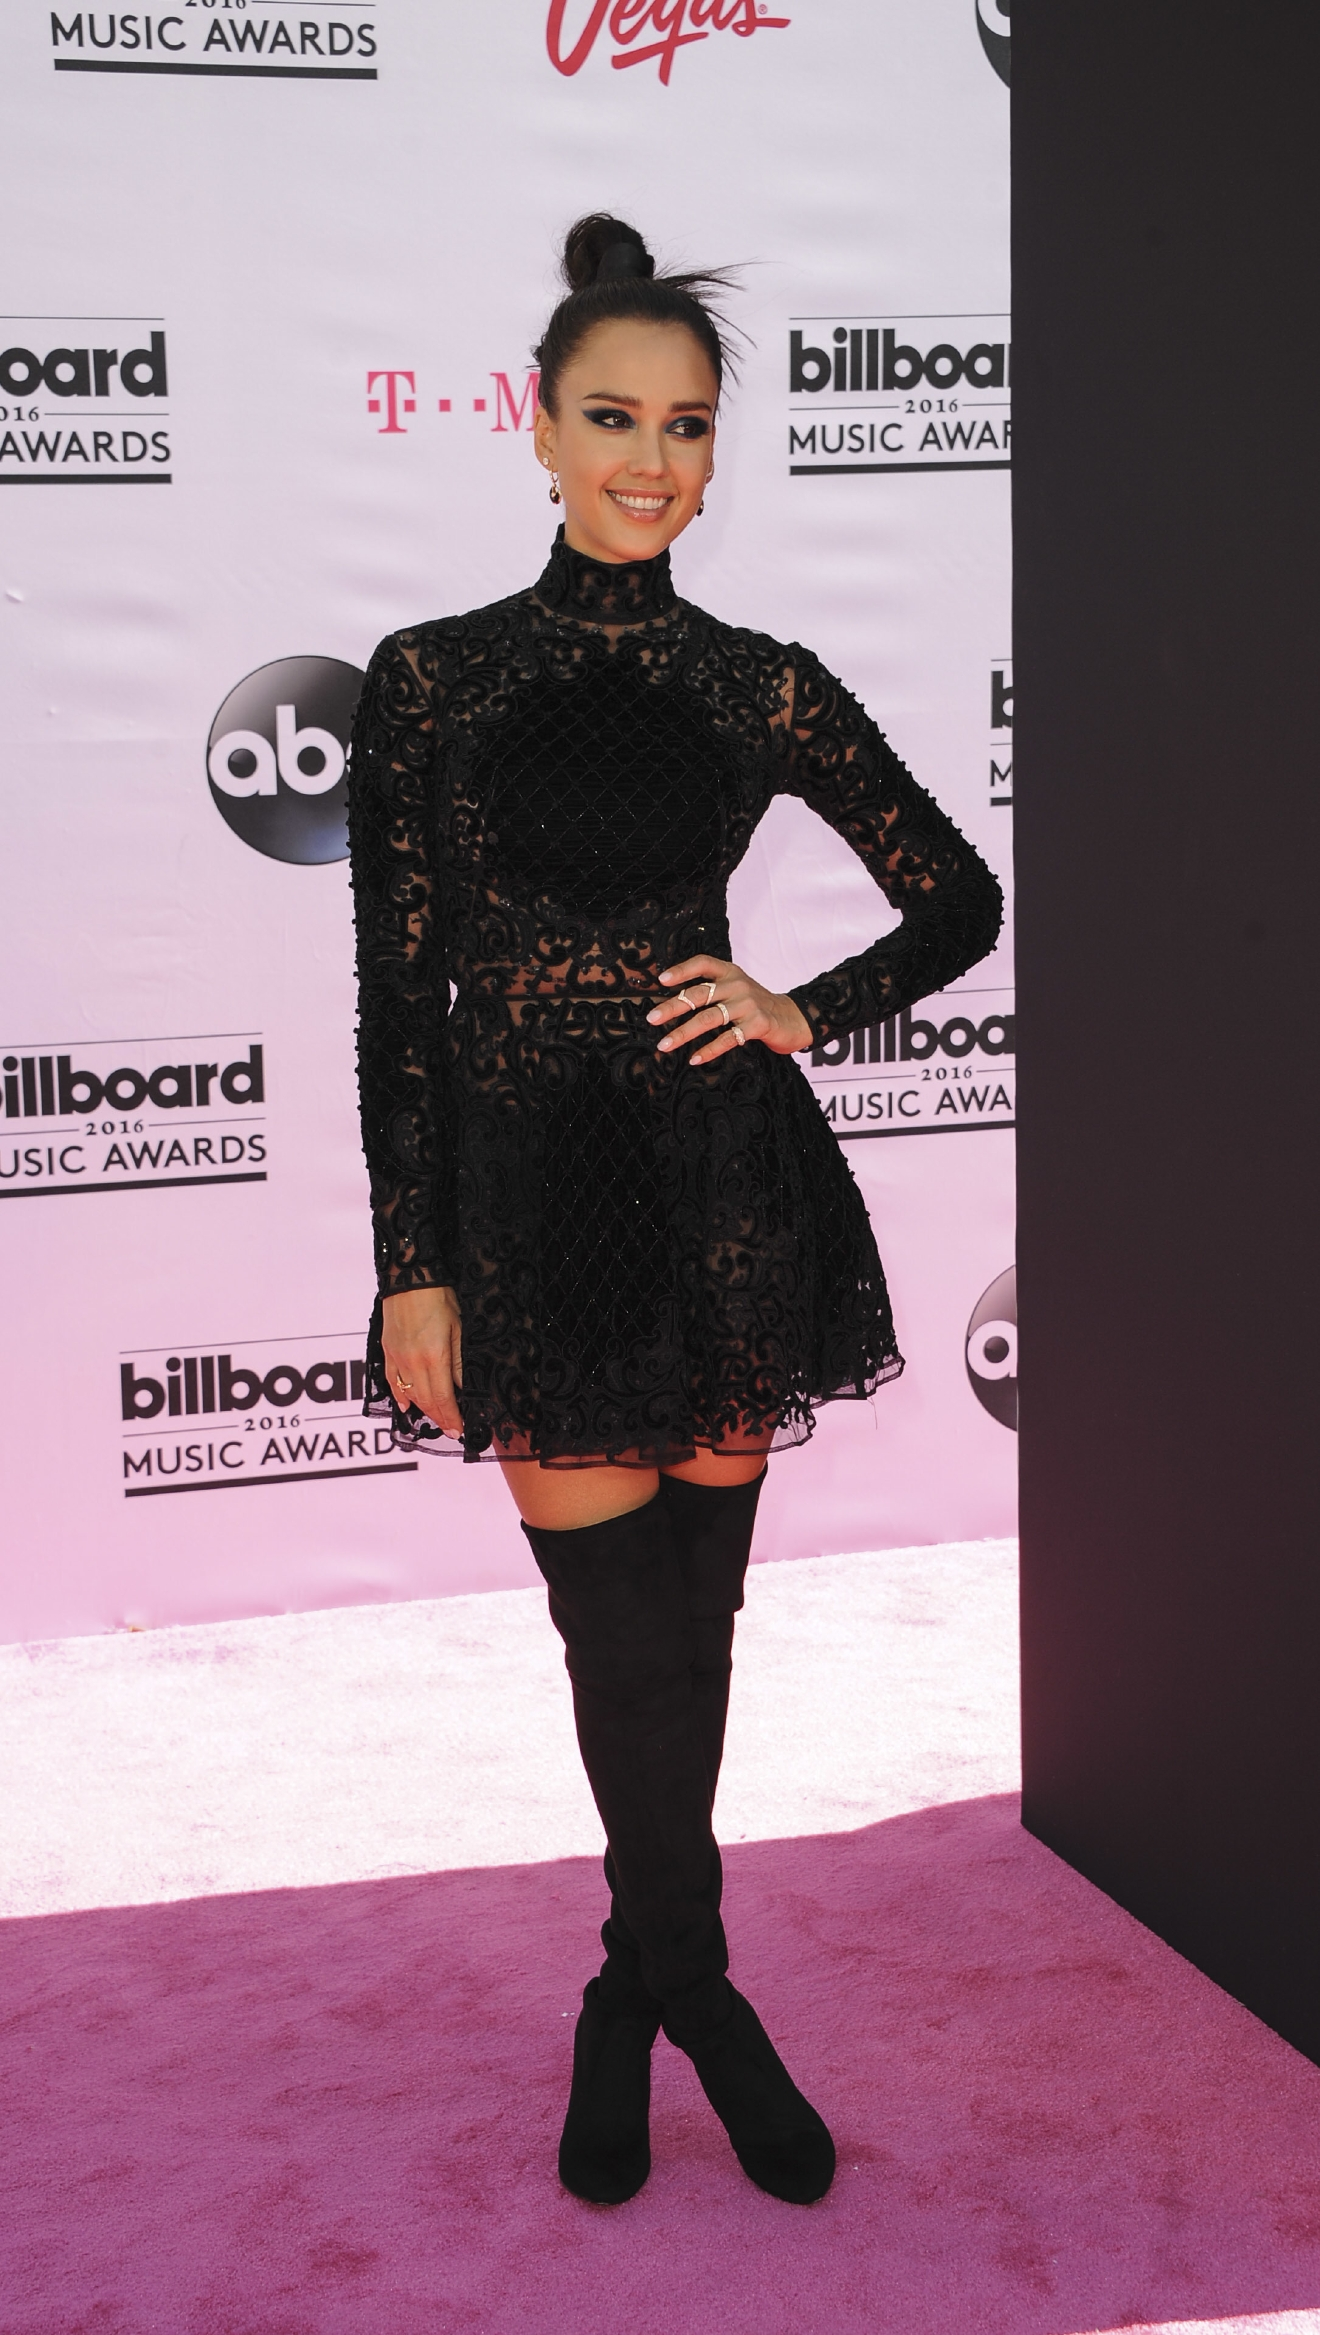 2016 Billboard Music Awards arrivals at the T-Mobile Arena Las Vegas                                    Featuring: Jessica Alba                  Where: Las Vegas, Nevada, United States                  When: 23 May 2016                  Credit: Apega/WENN.com